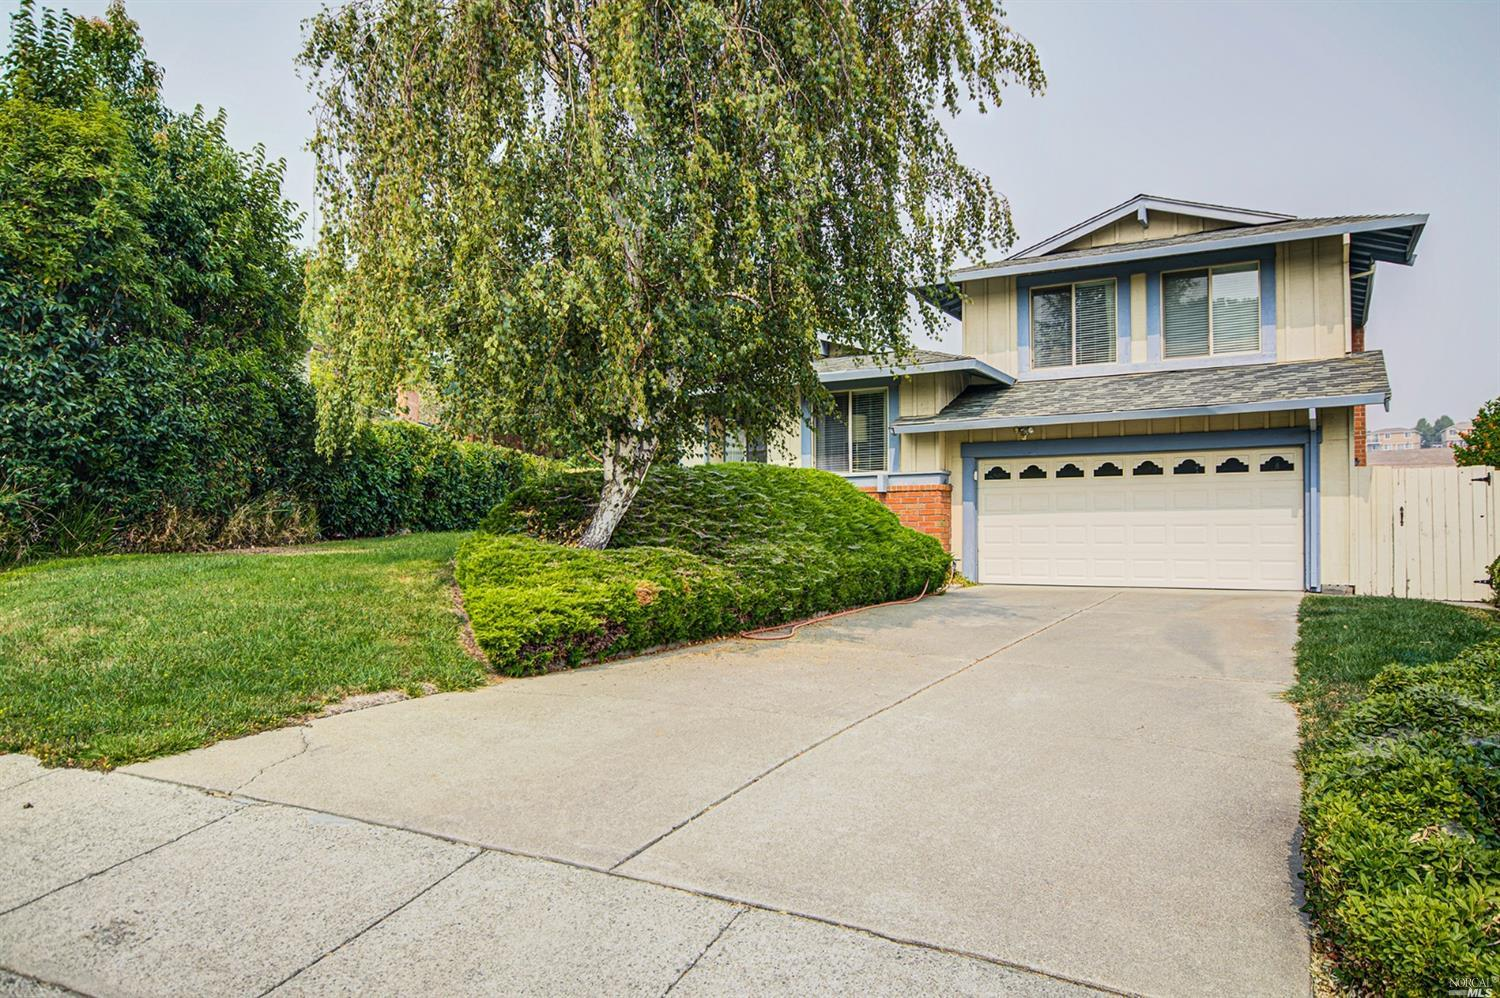 Original owner offering this beautiful tri-level home with 4 bedrooms, 3 baths and views of the hill